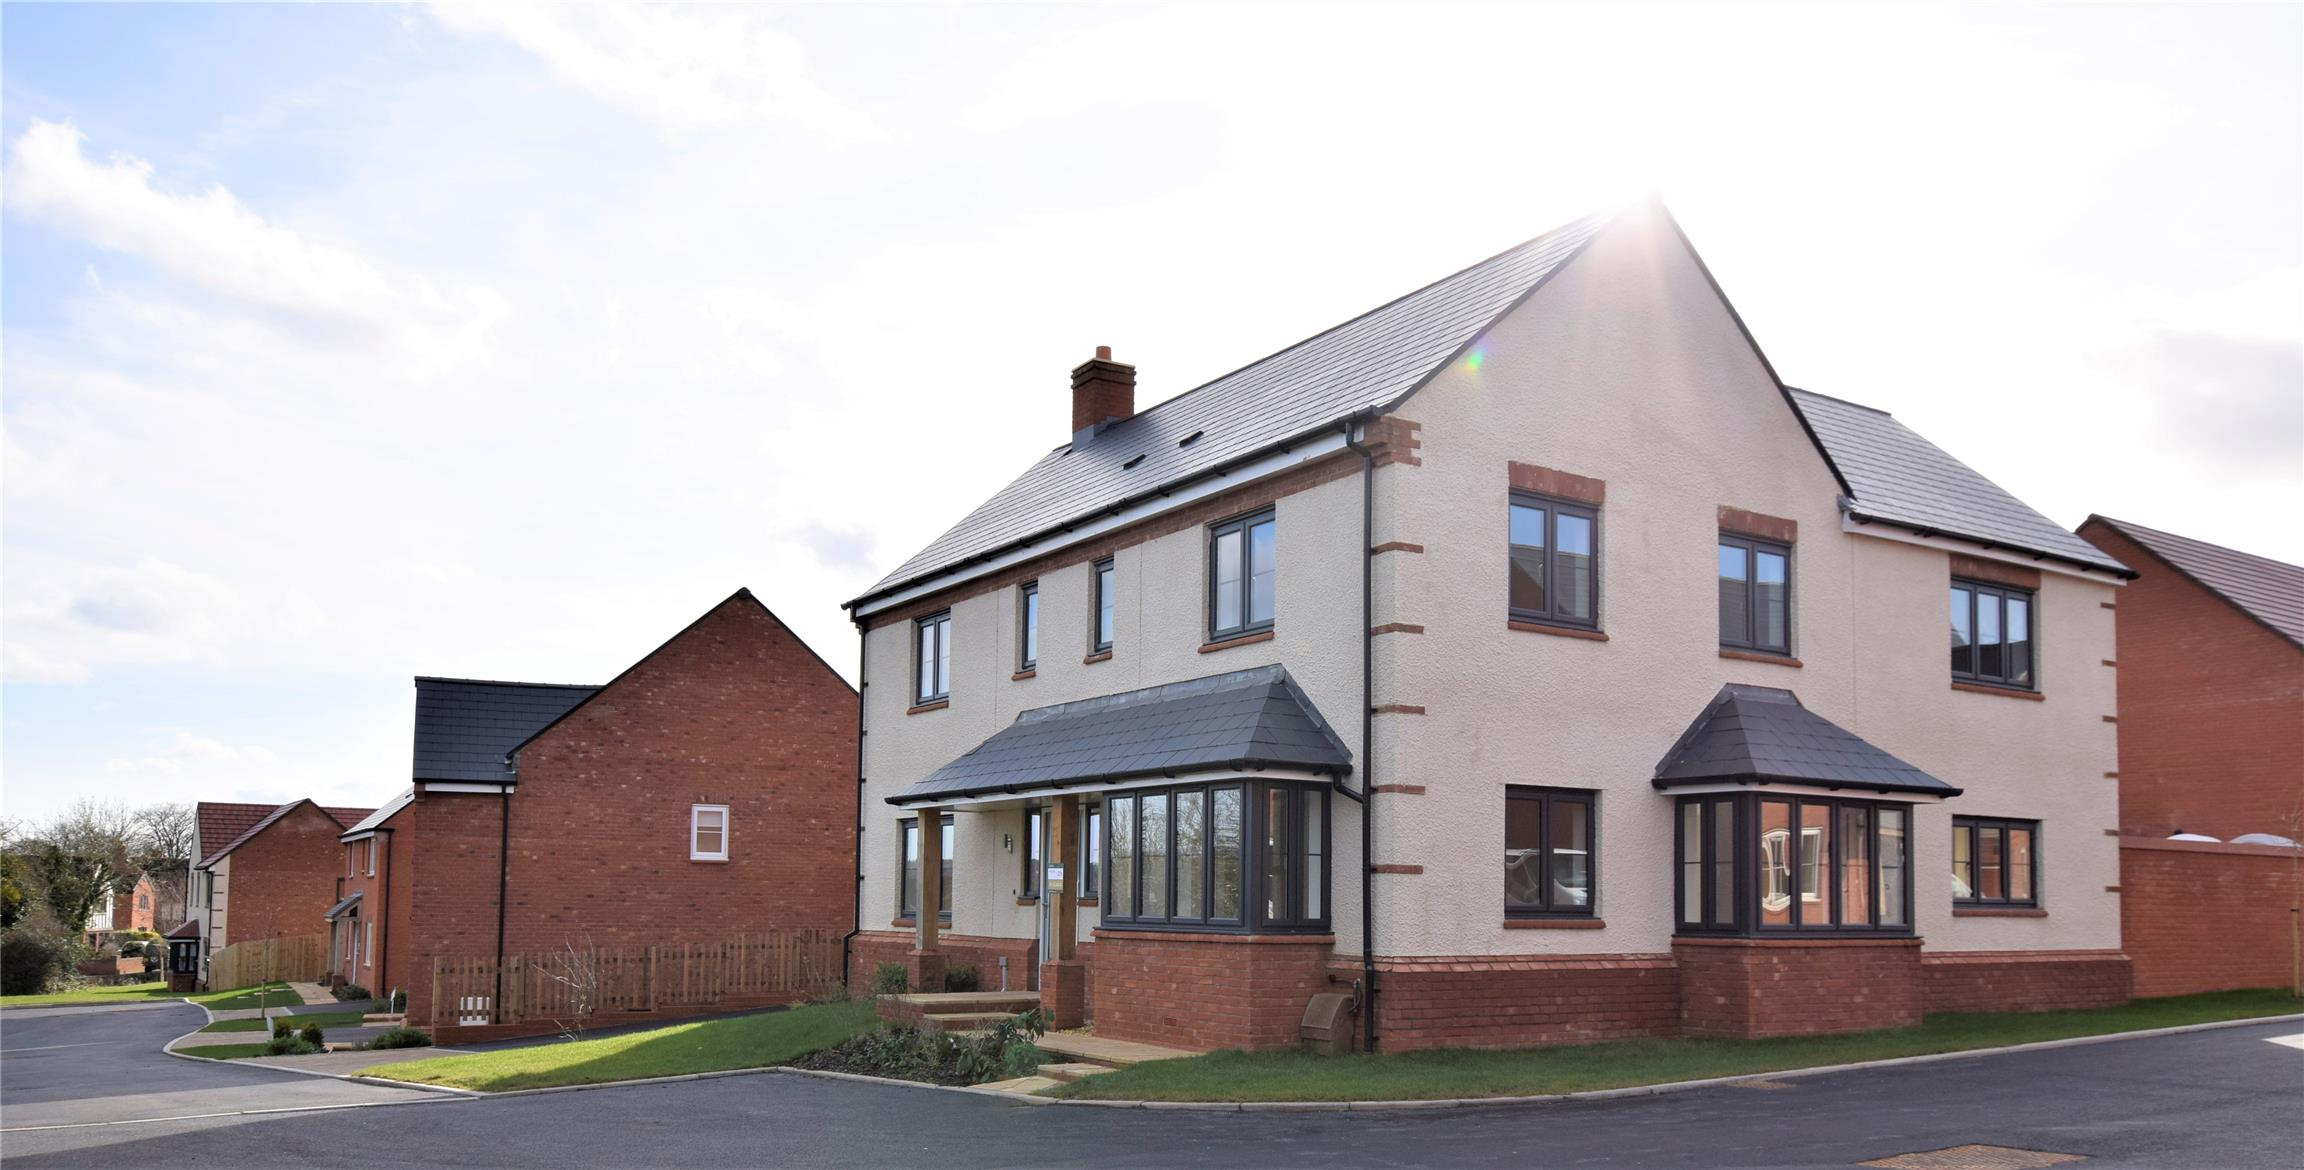 Plot 26, The Ashbury, Nup End Green, Ashleworth, Gloucester GL19